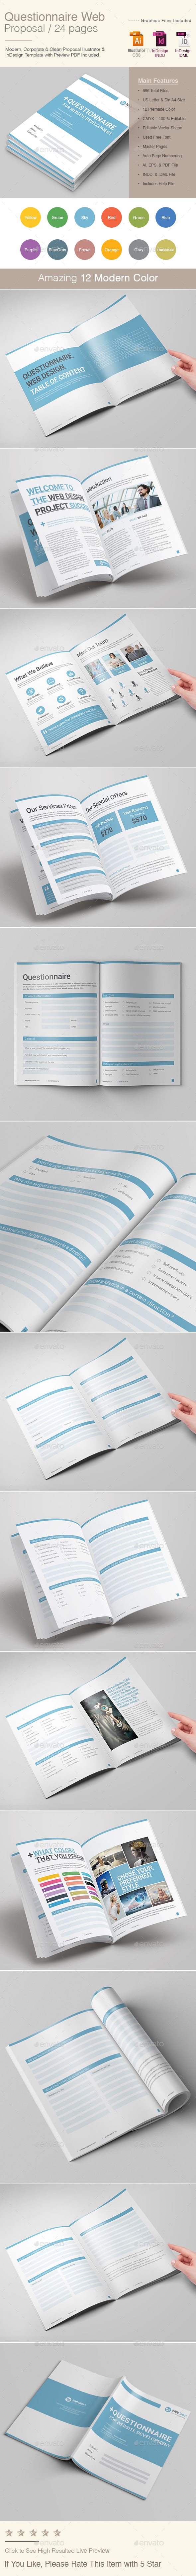 Questionnaire Web Design Proposal - Proposals & Invoices Stationery